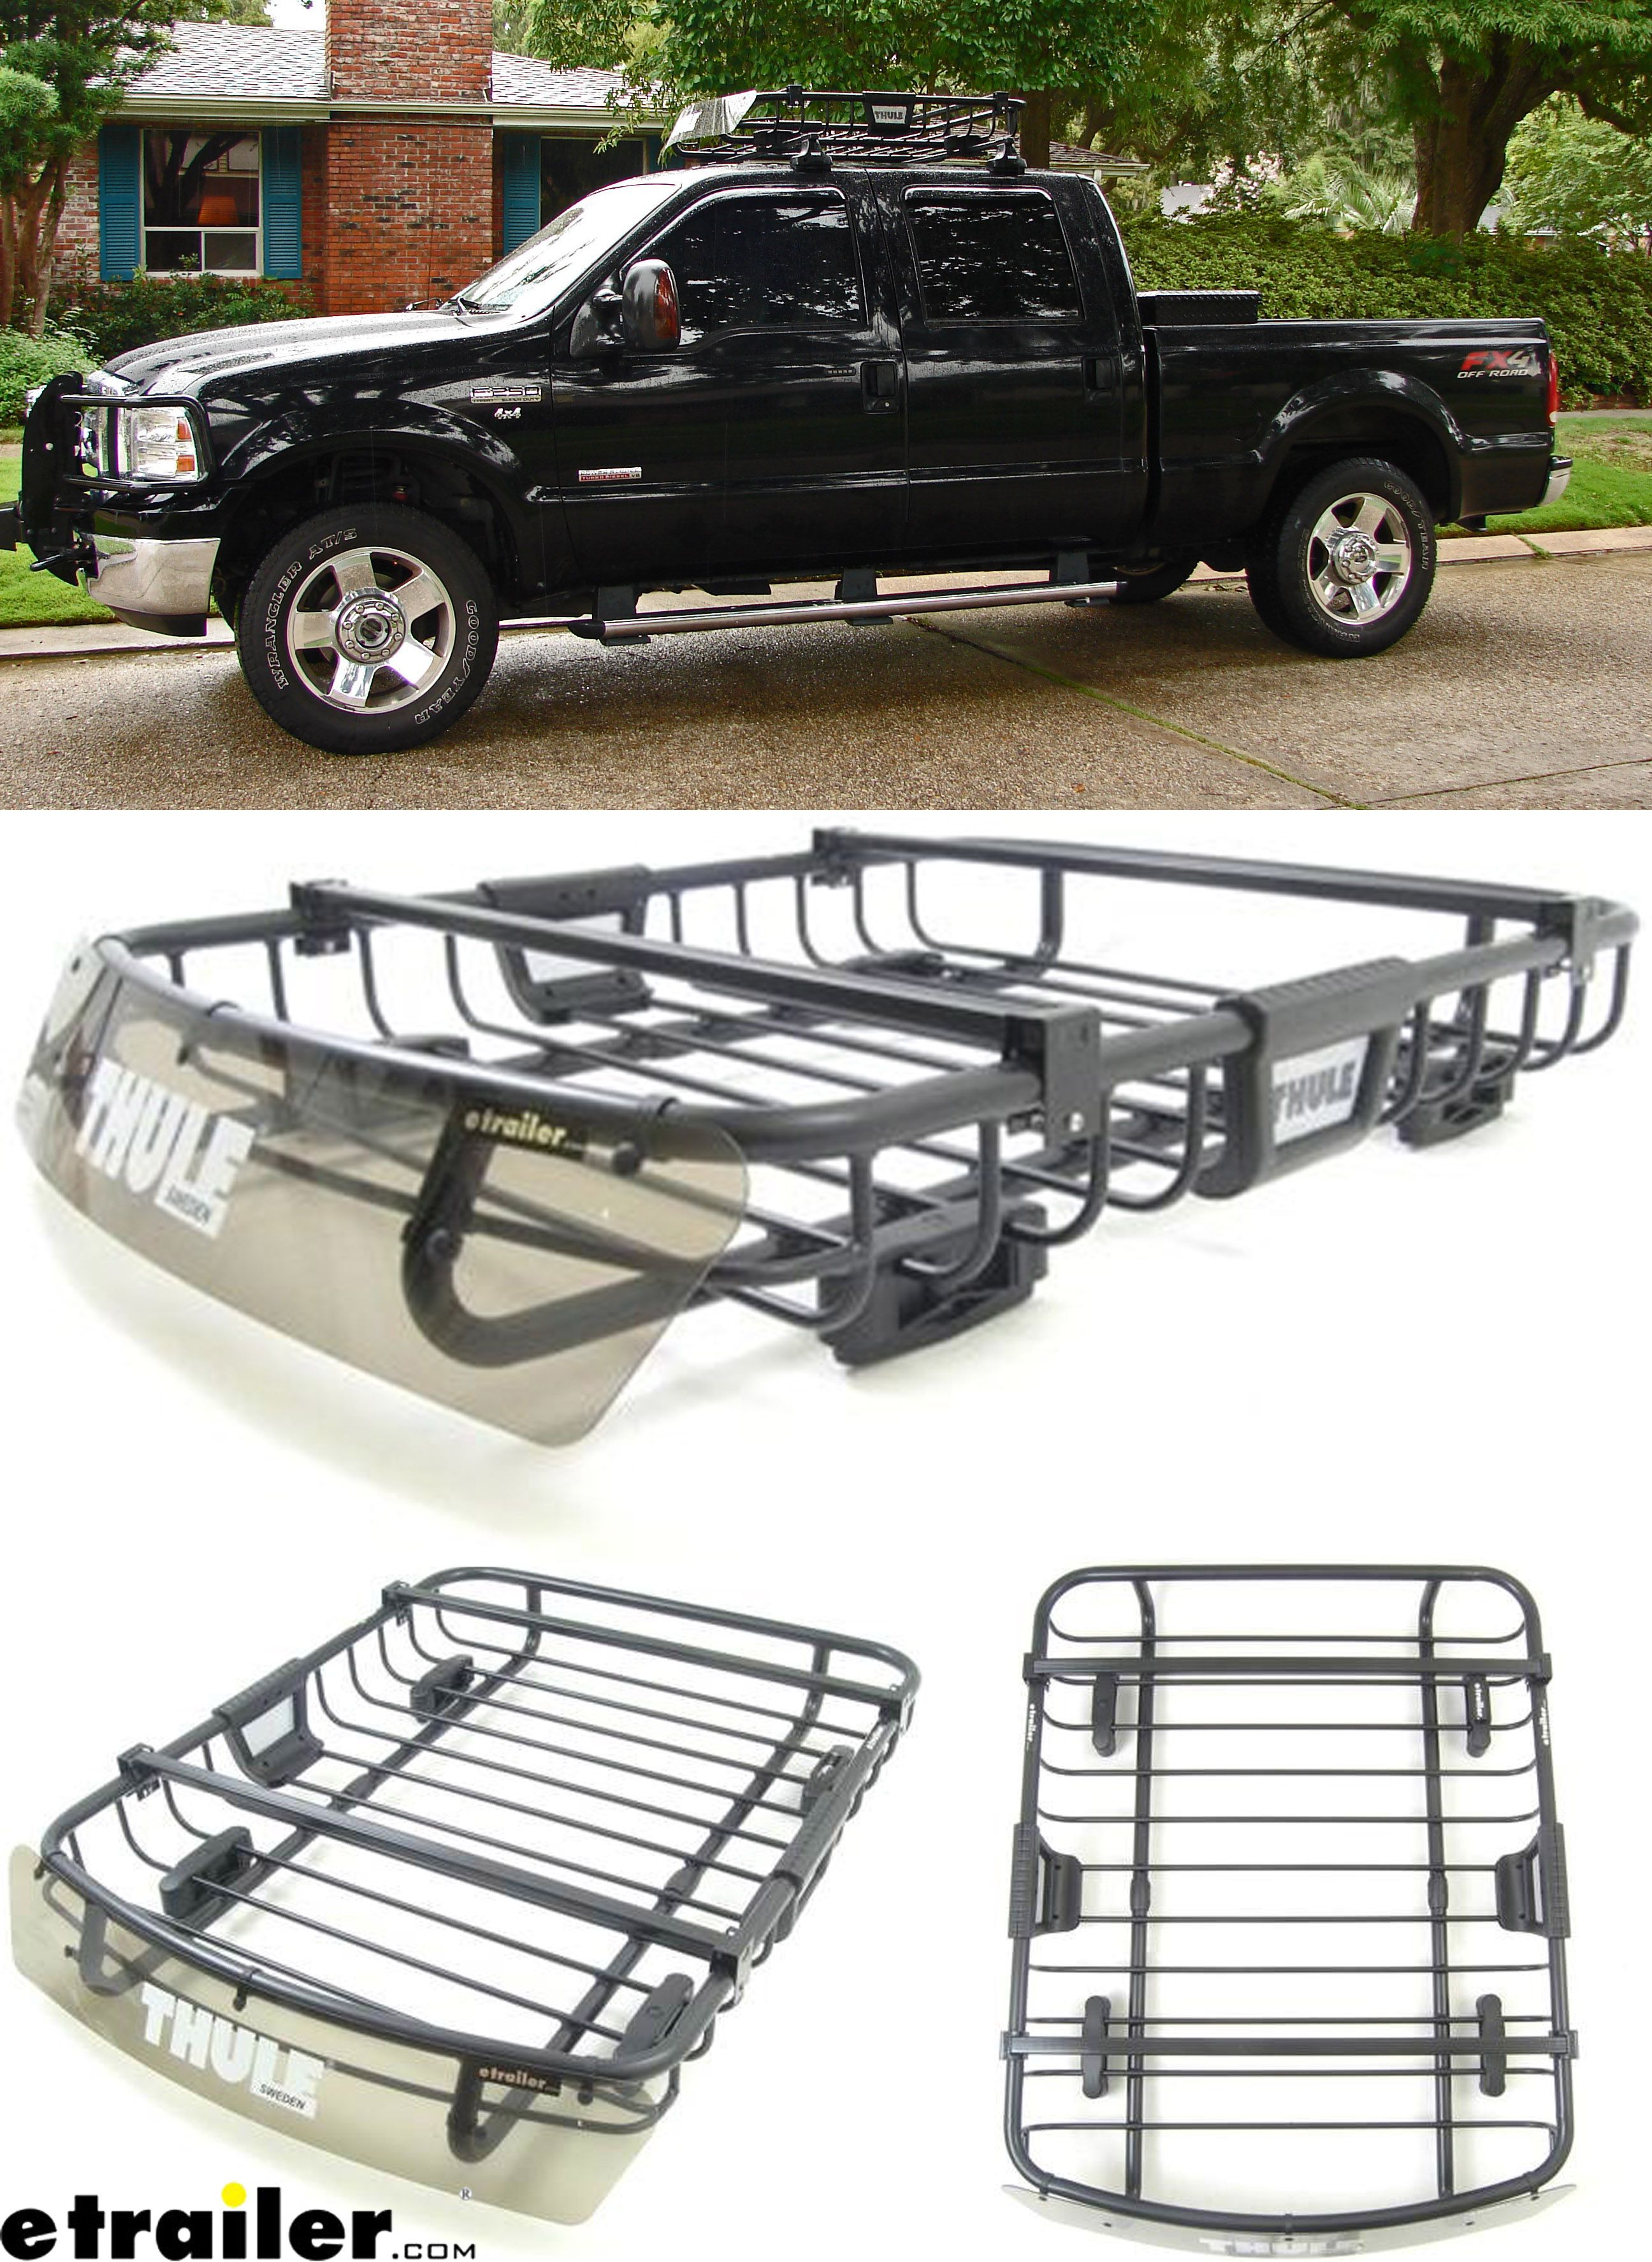 A Great Gift Idea For Dad Mom Or Those Who Love The Outdoors And Also Love Traveling Efficiently Put This Thule Roo Cargo Carrier Truck Accesories Cargo Rack